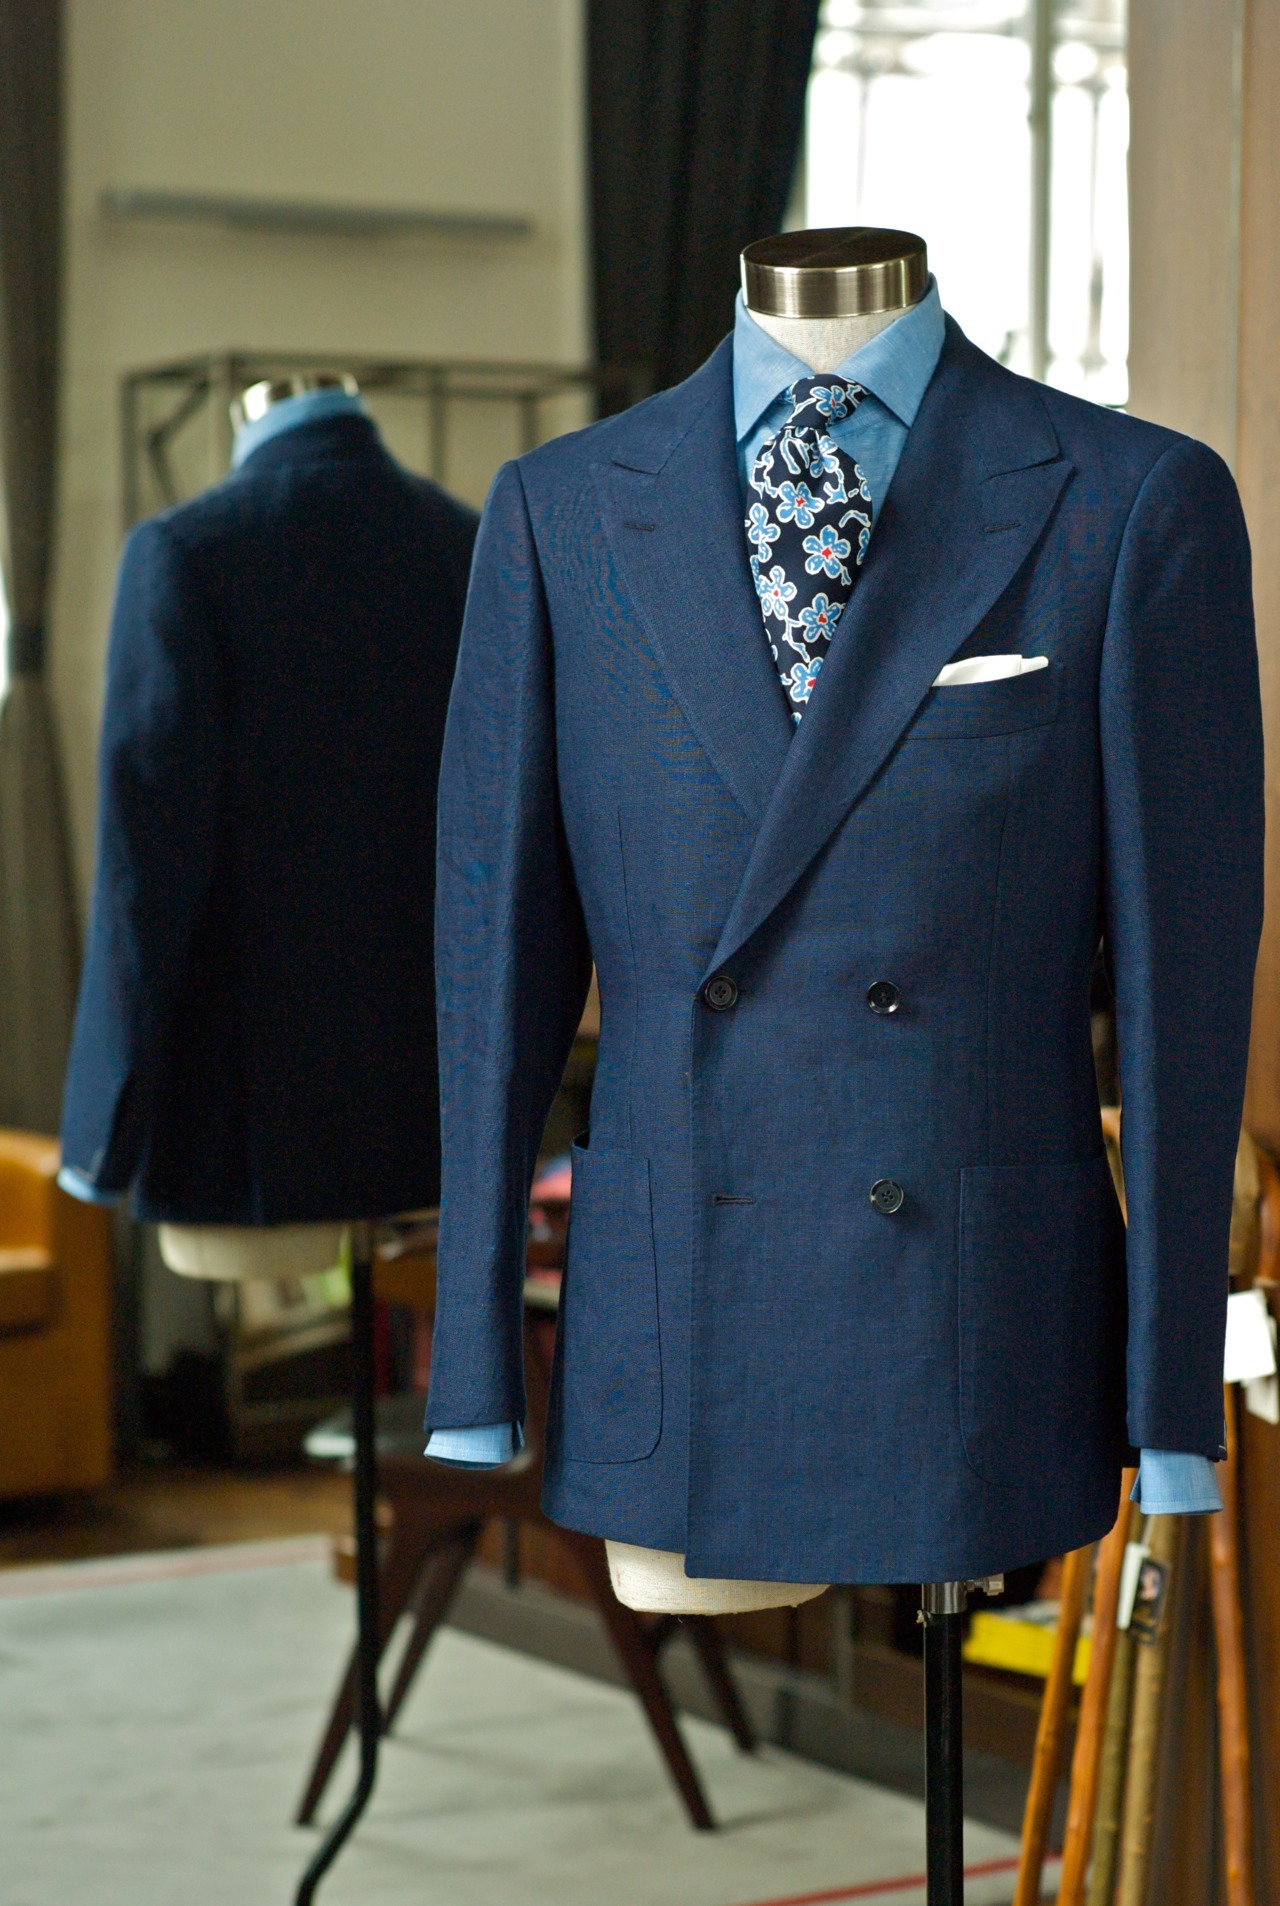 Ring Jacket 4x2 Double Breasted Linen w/ 2 patch Suit - $15,900 HKD